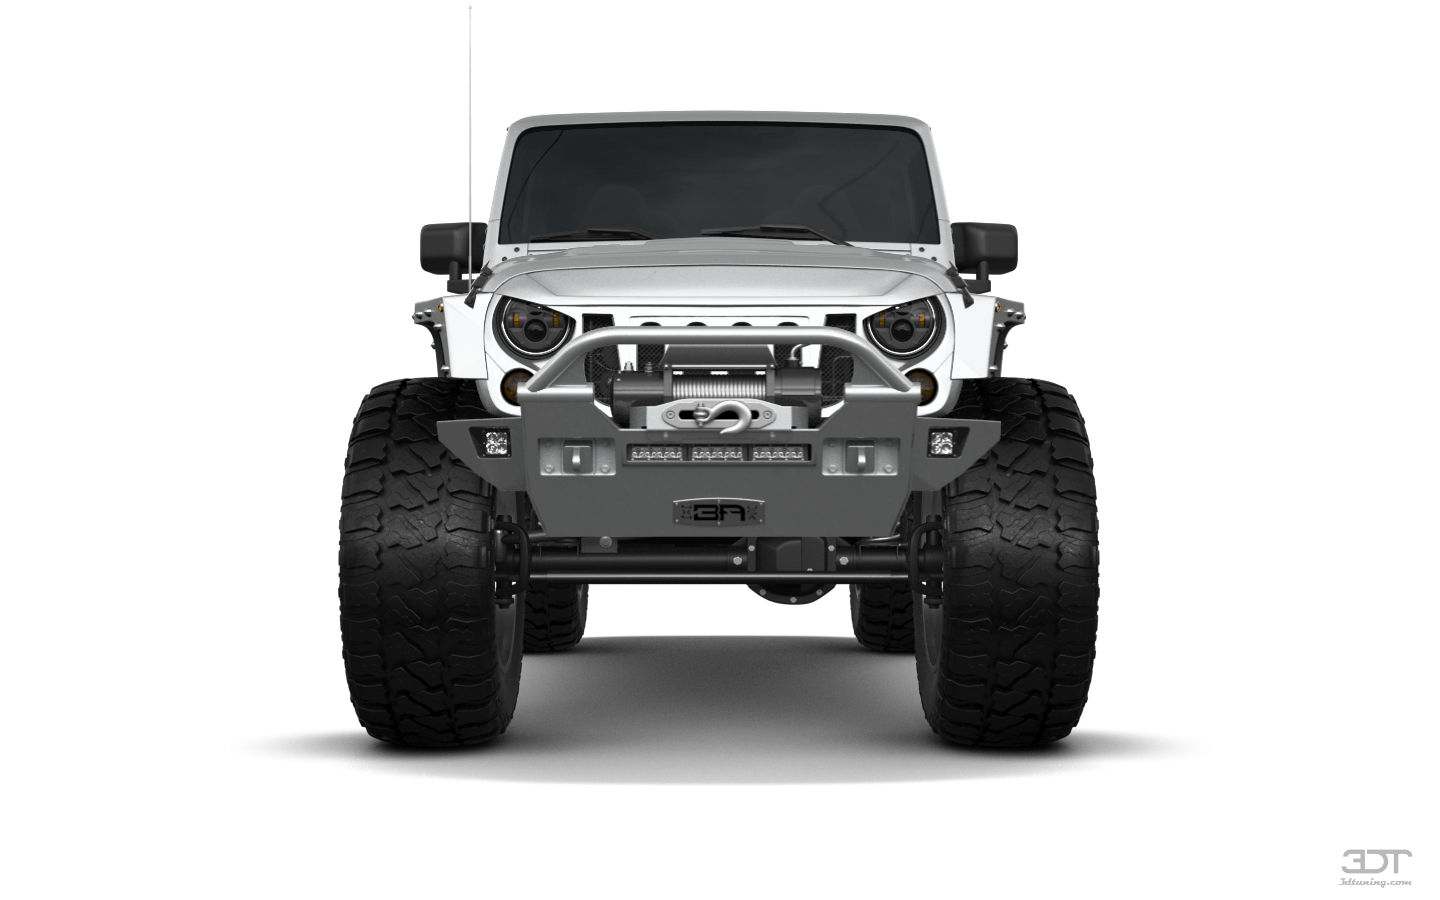 Jeep Wrangler Unlimited Rubicon Recon 4 Door SUV 2017